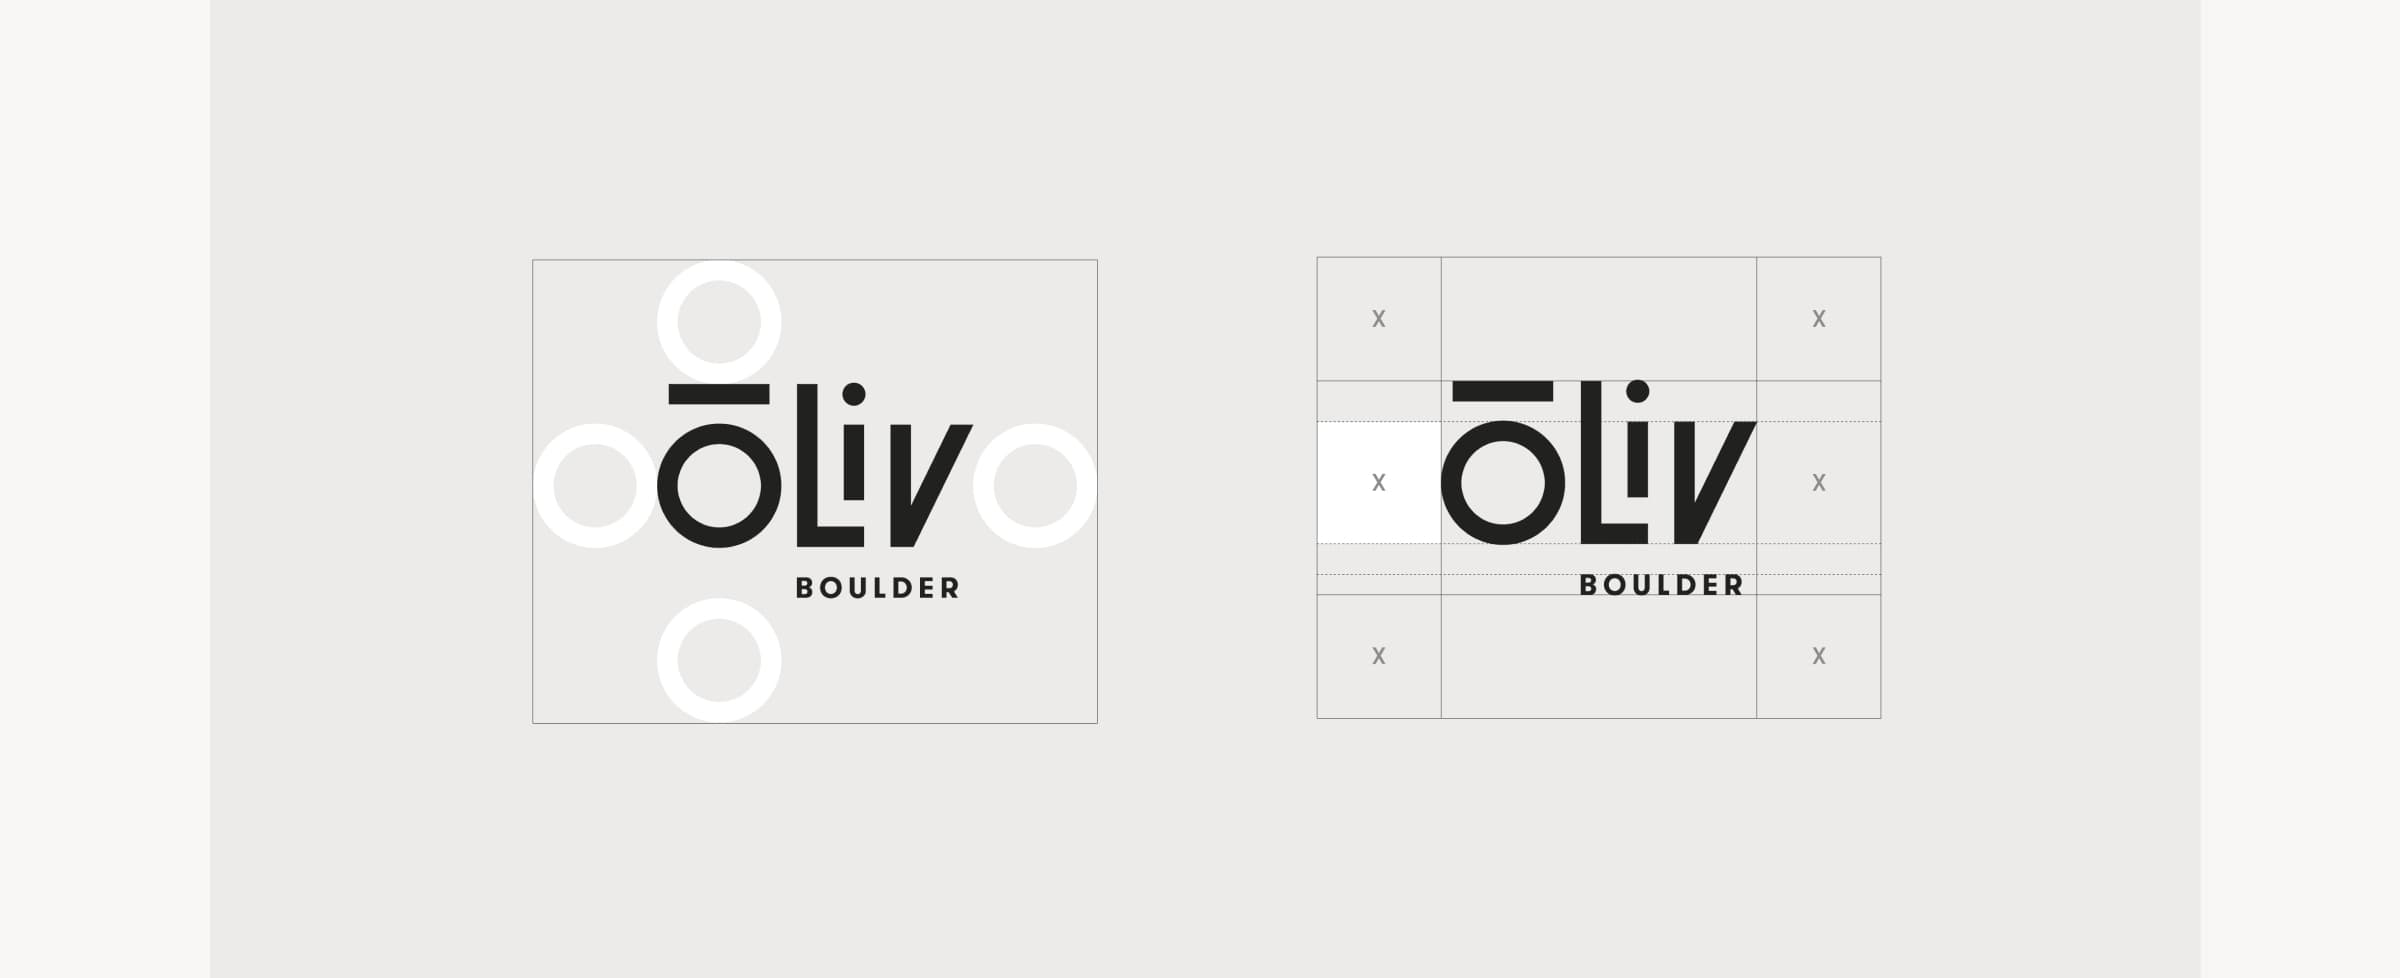 An image of the ōLiv logo showing placement and sizing rules.